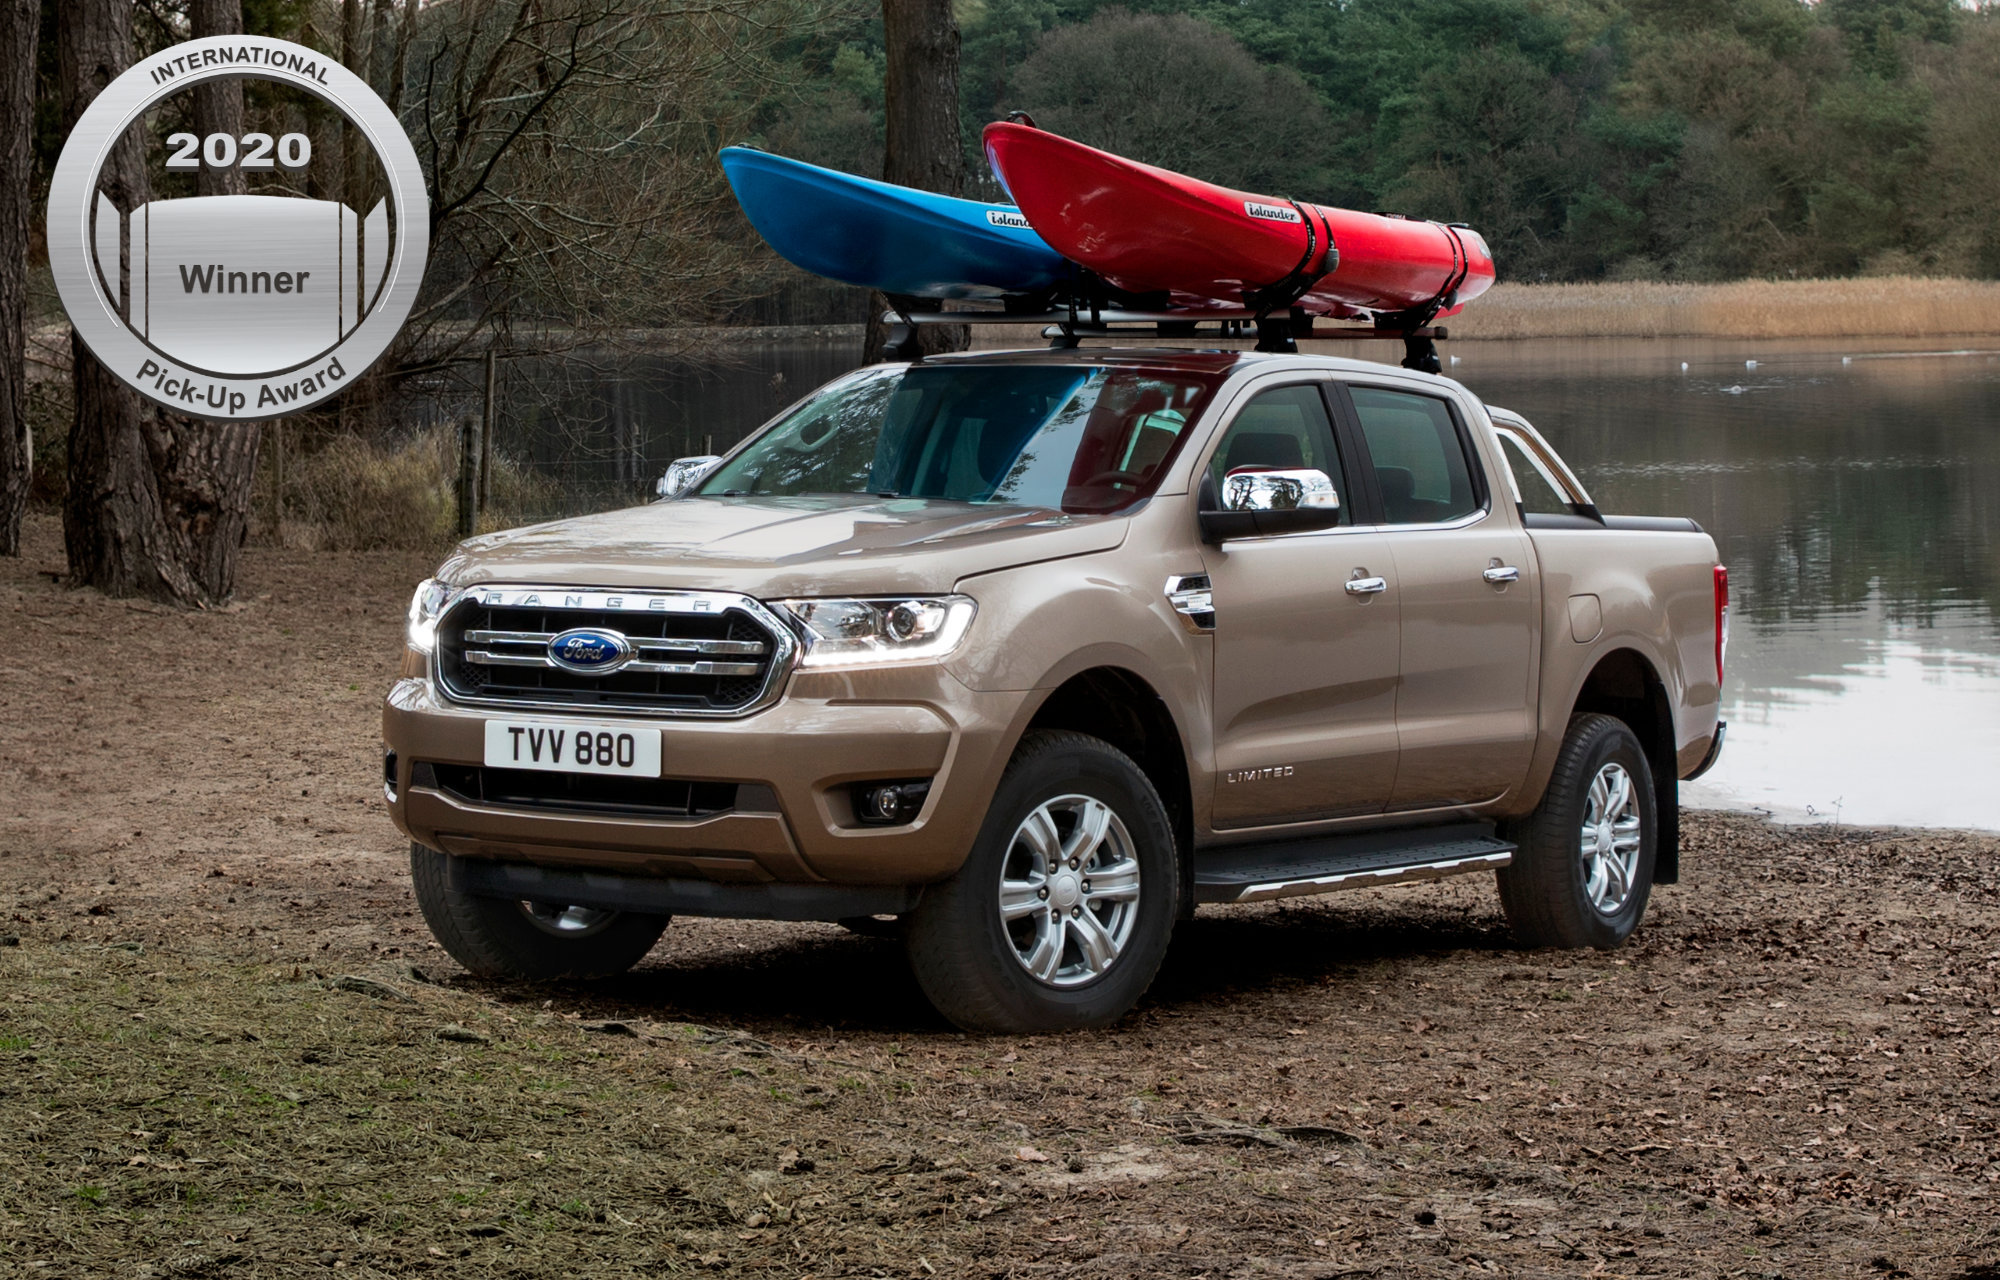 Ford Ranger - Pick-up of the Year